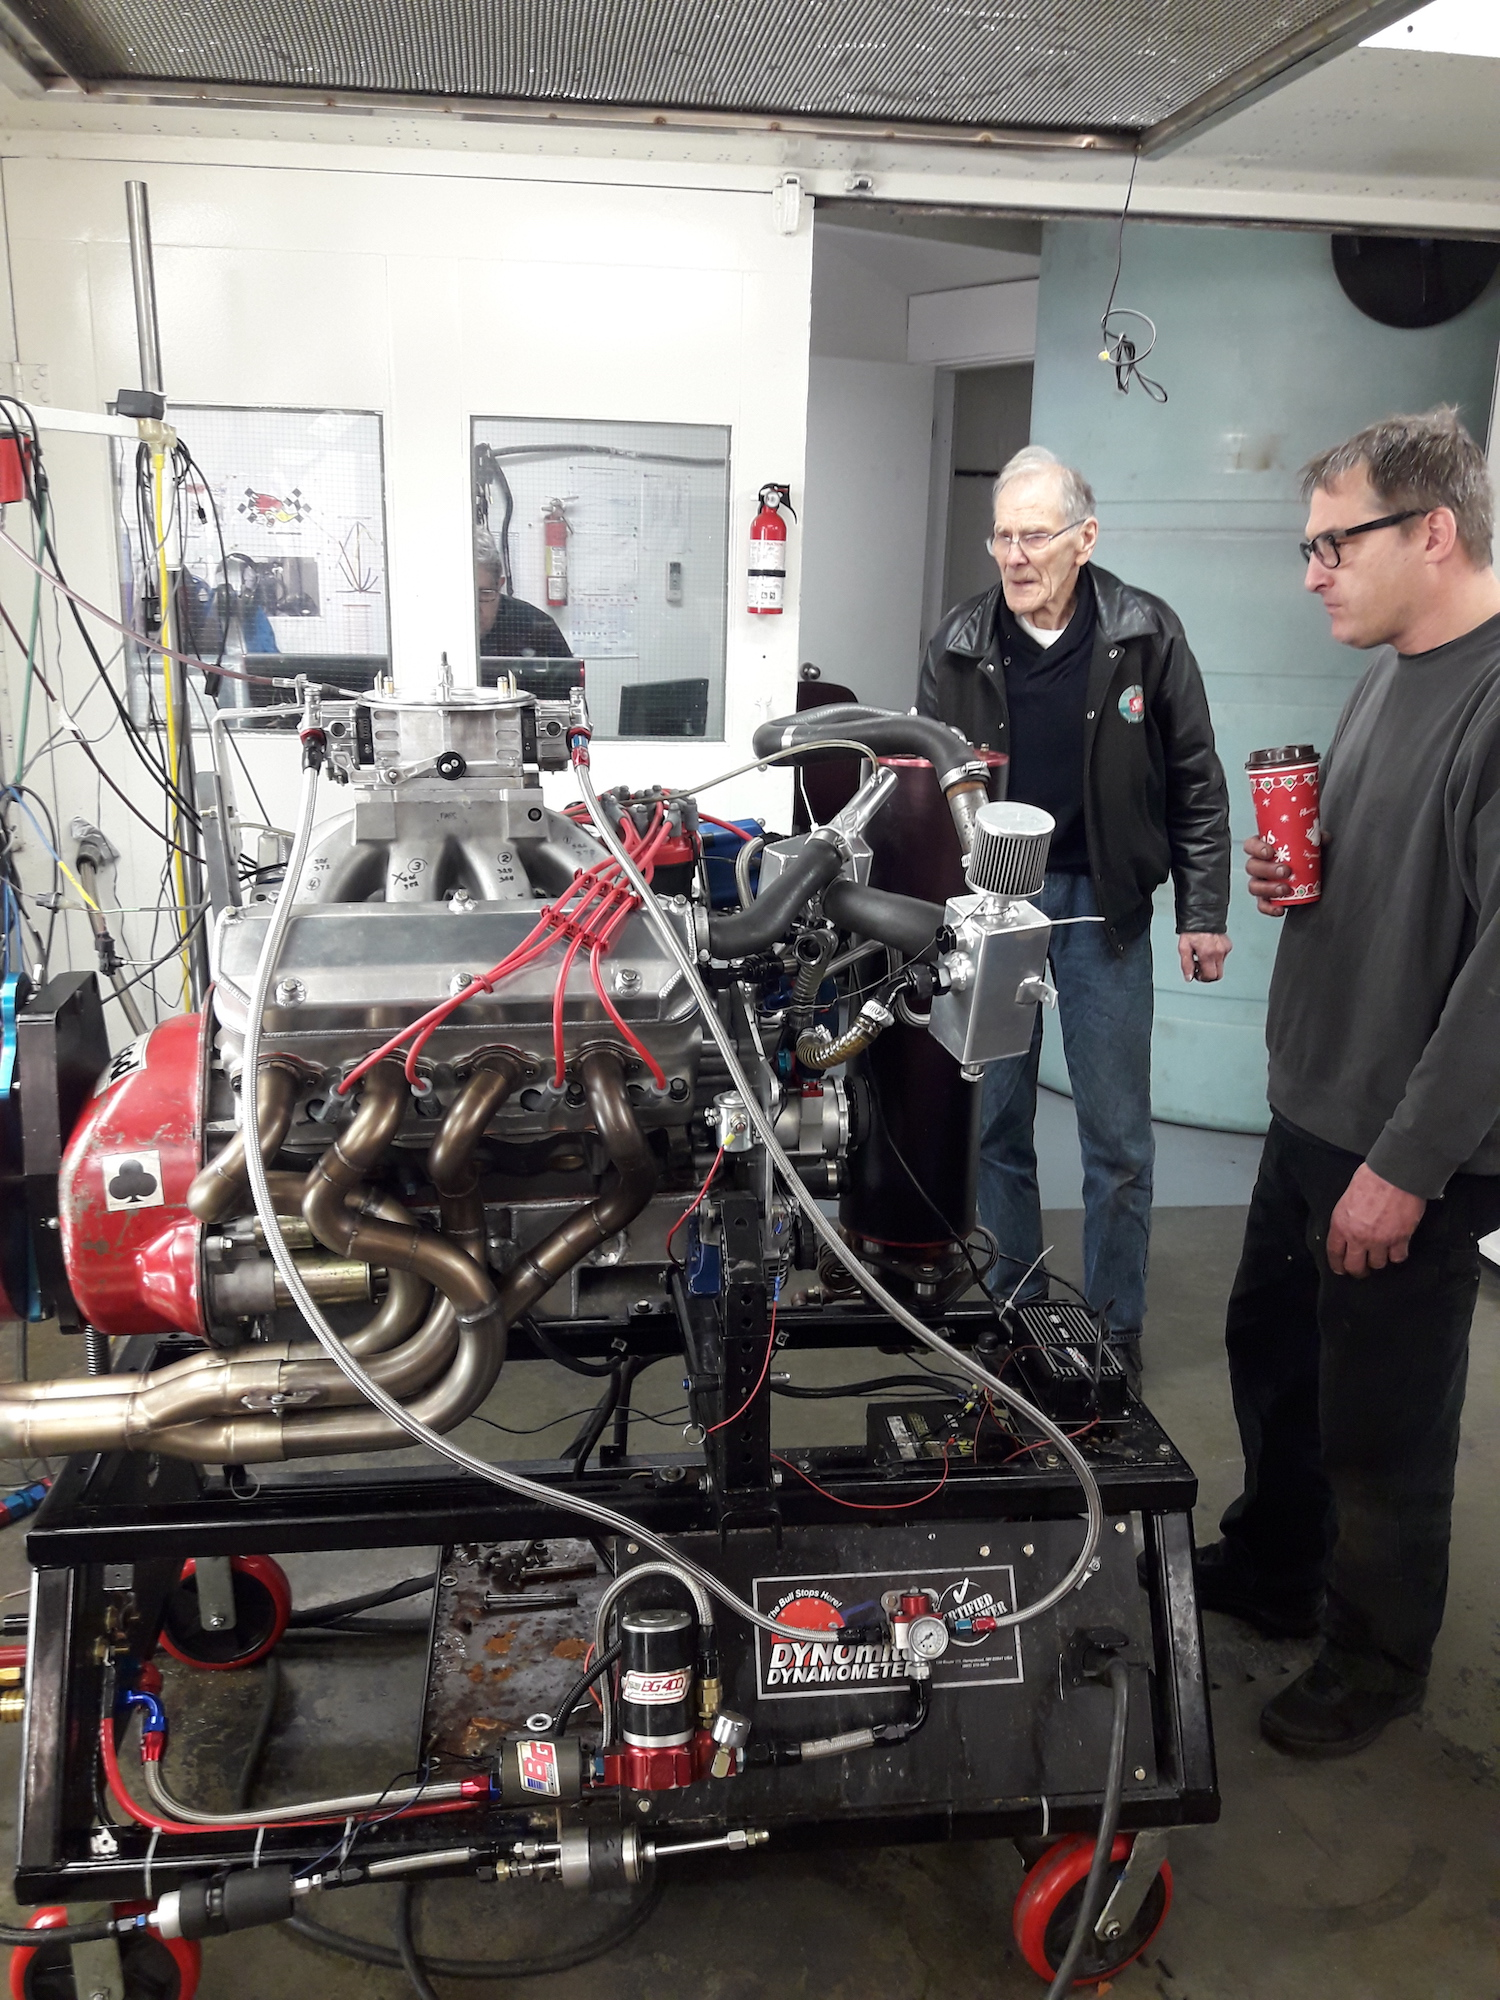 two men examine an engine